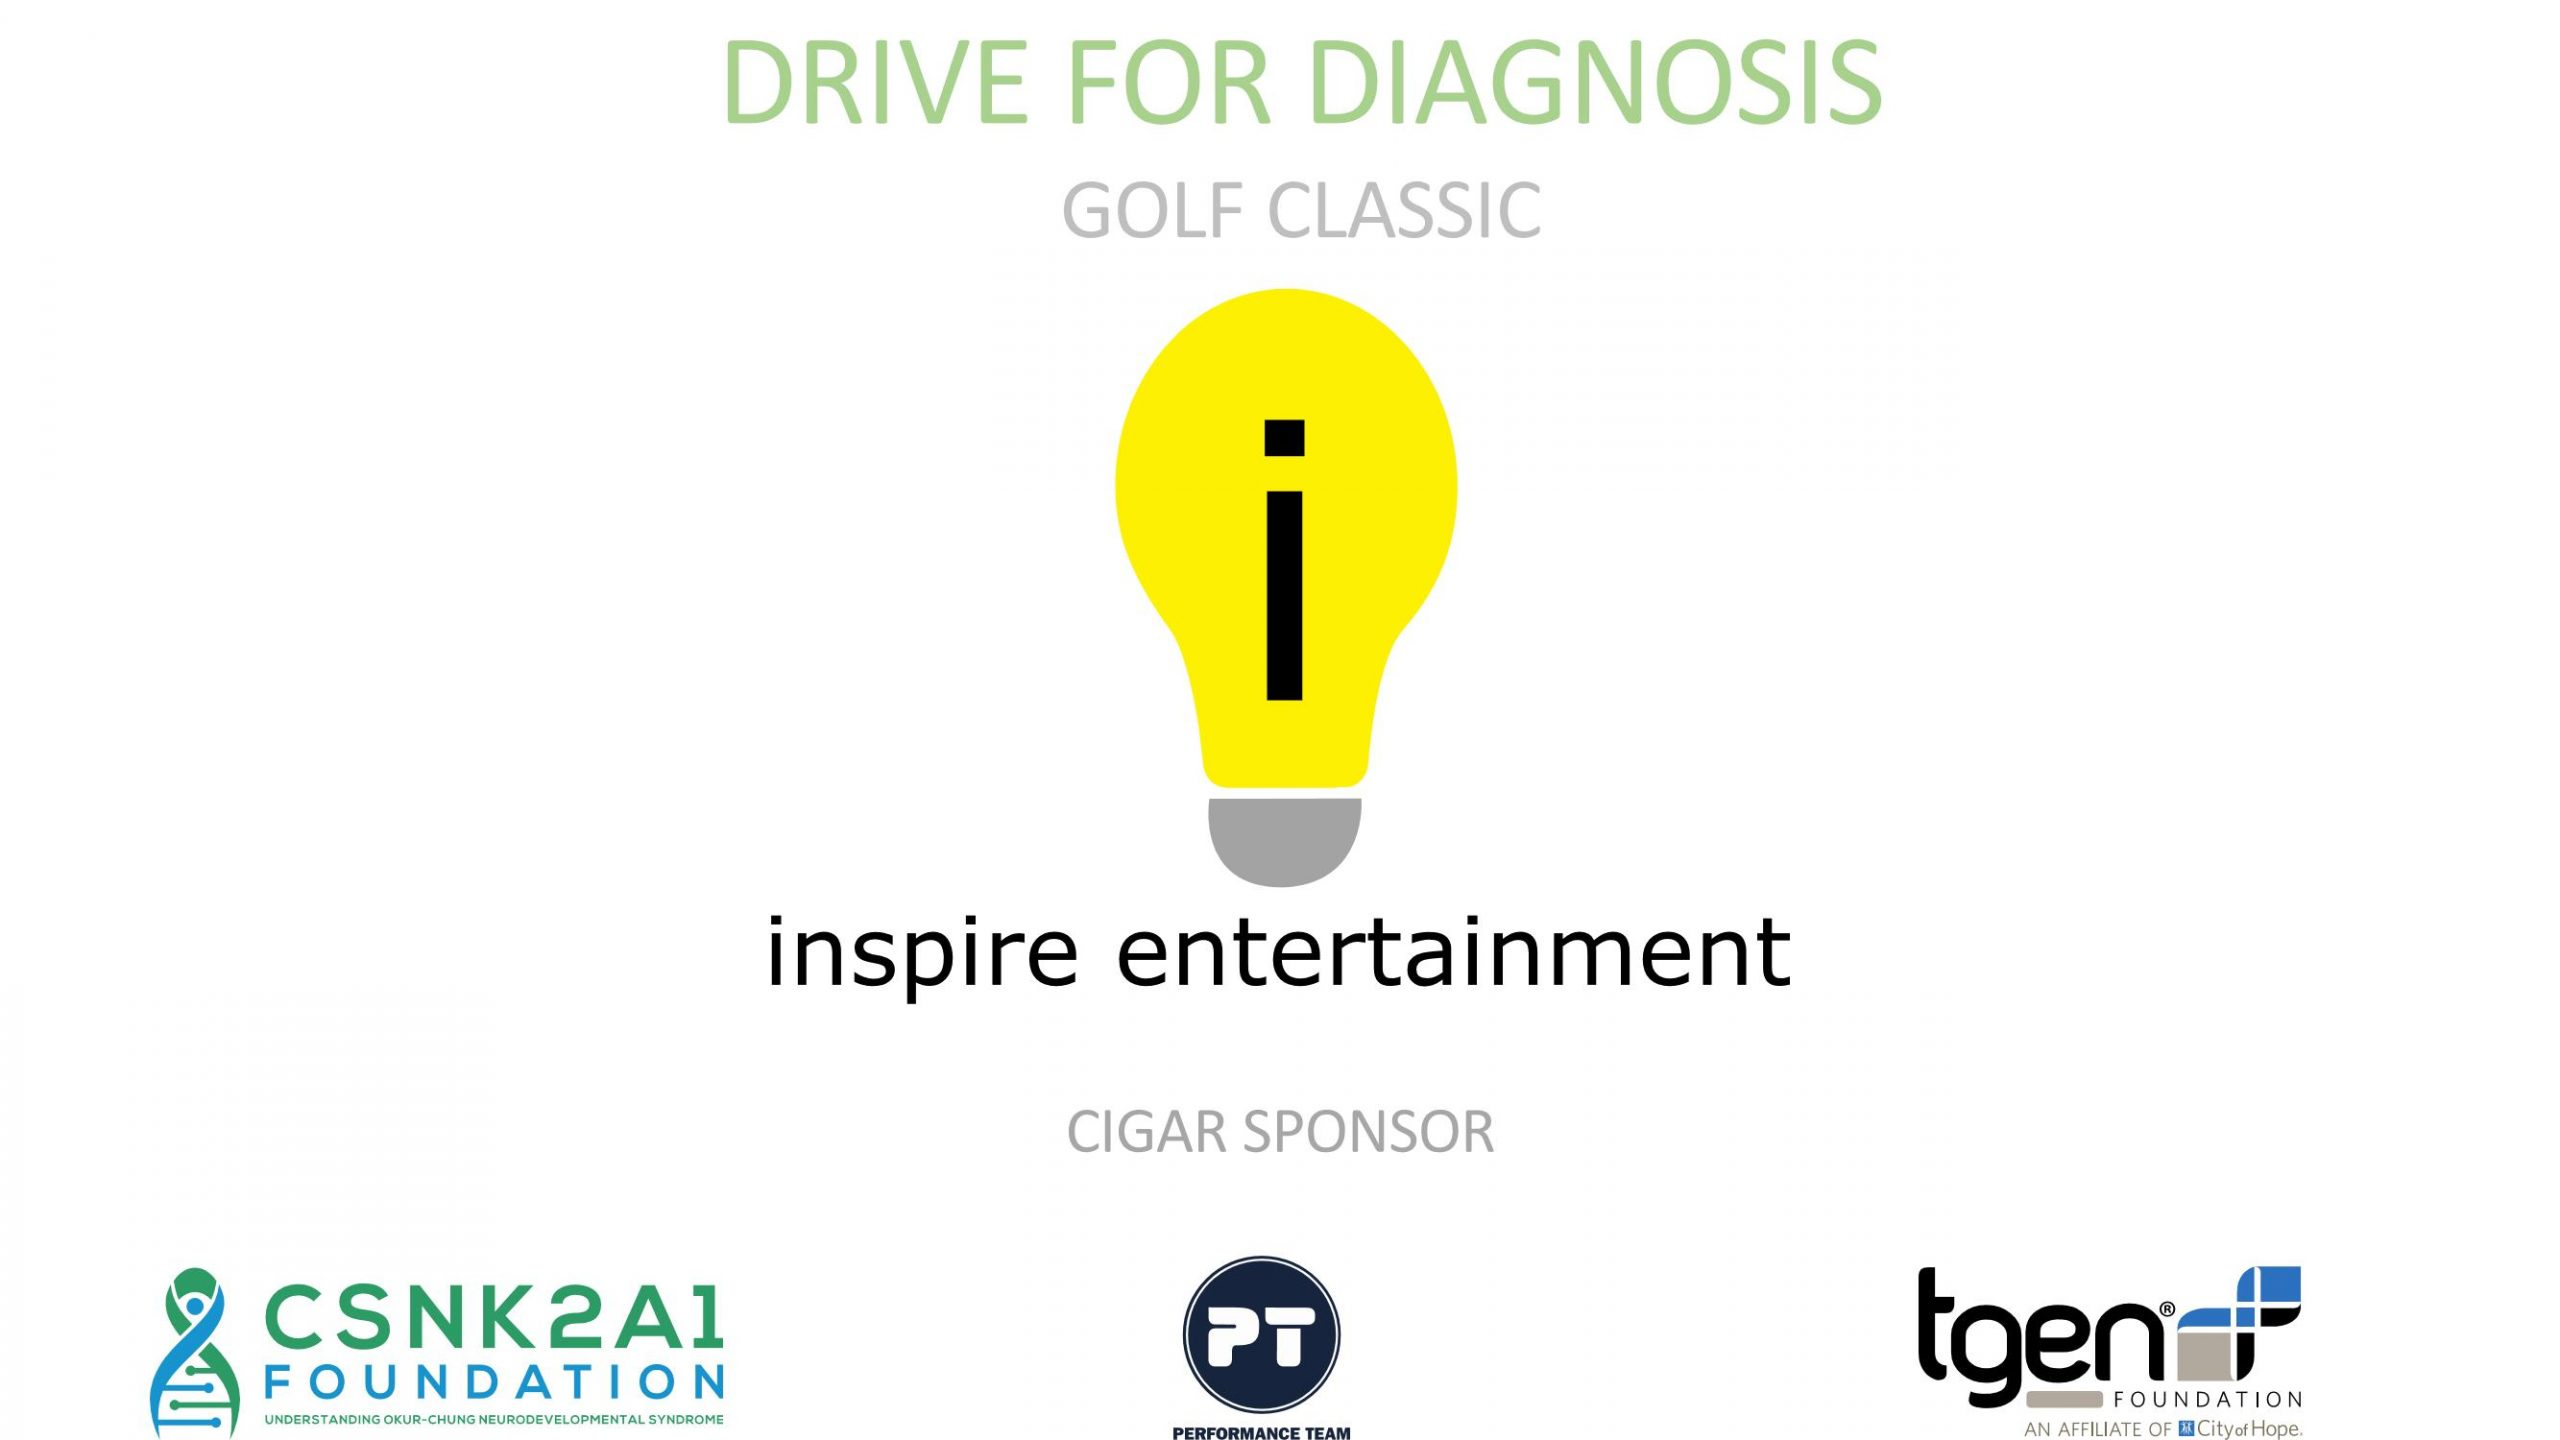 Cigar Sponsor - Inspire Entertainment